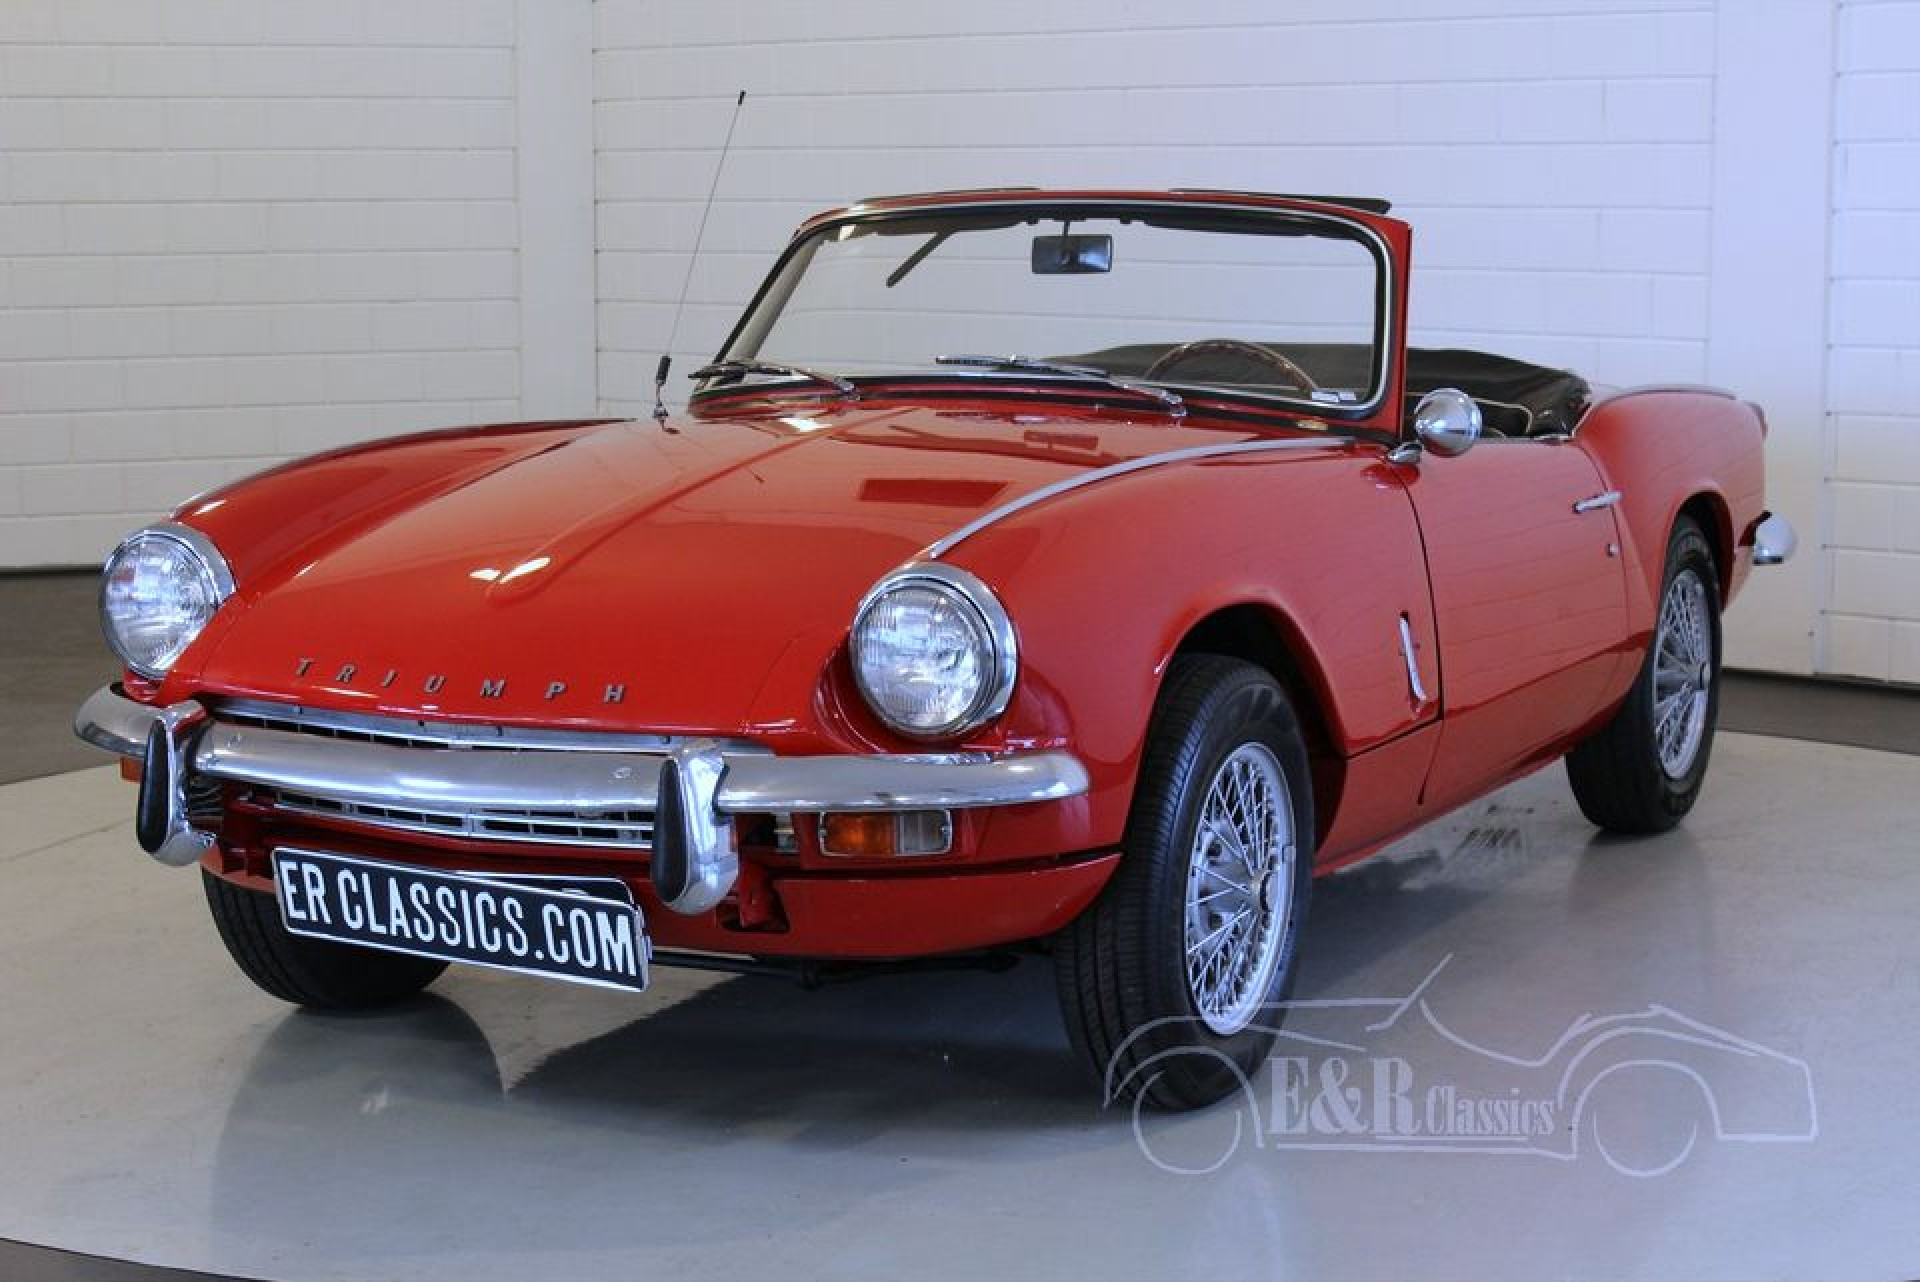 triumph spitfire mk3 1969 zum kauf bei erclassics. Black Bedroom Furniture Sets. Home Design Ideas